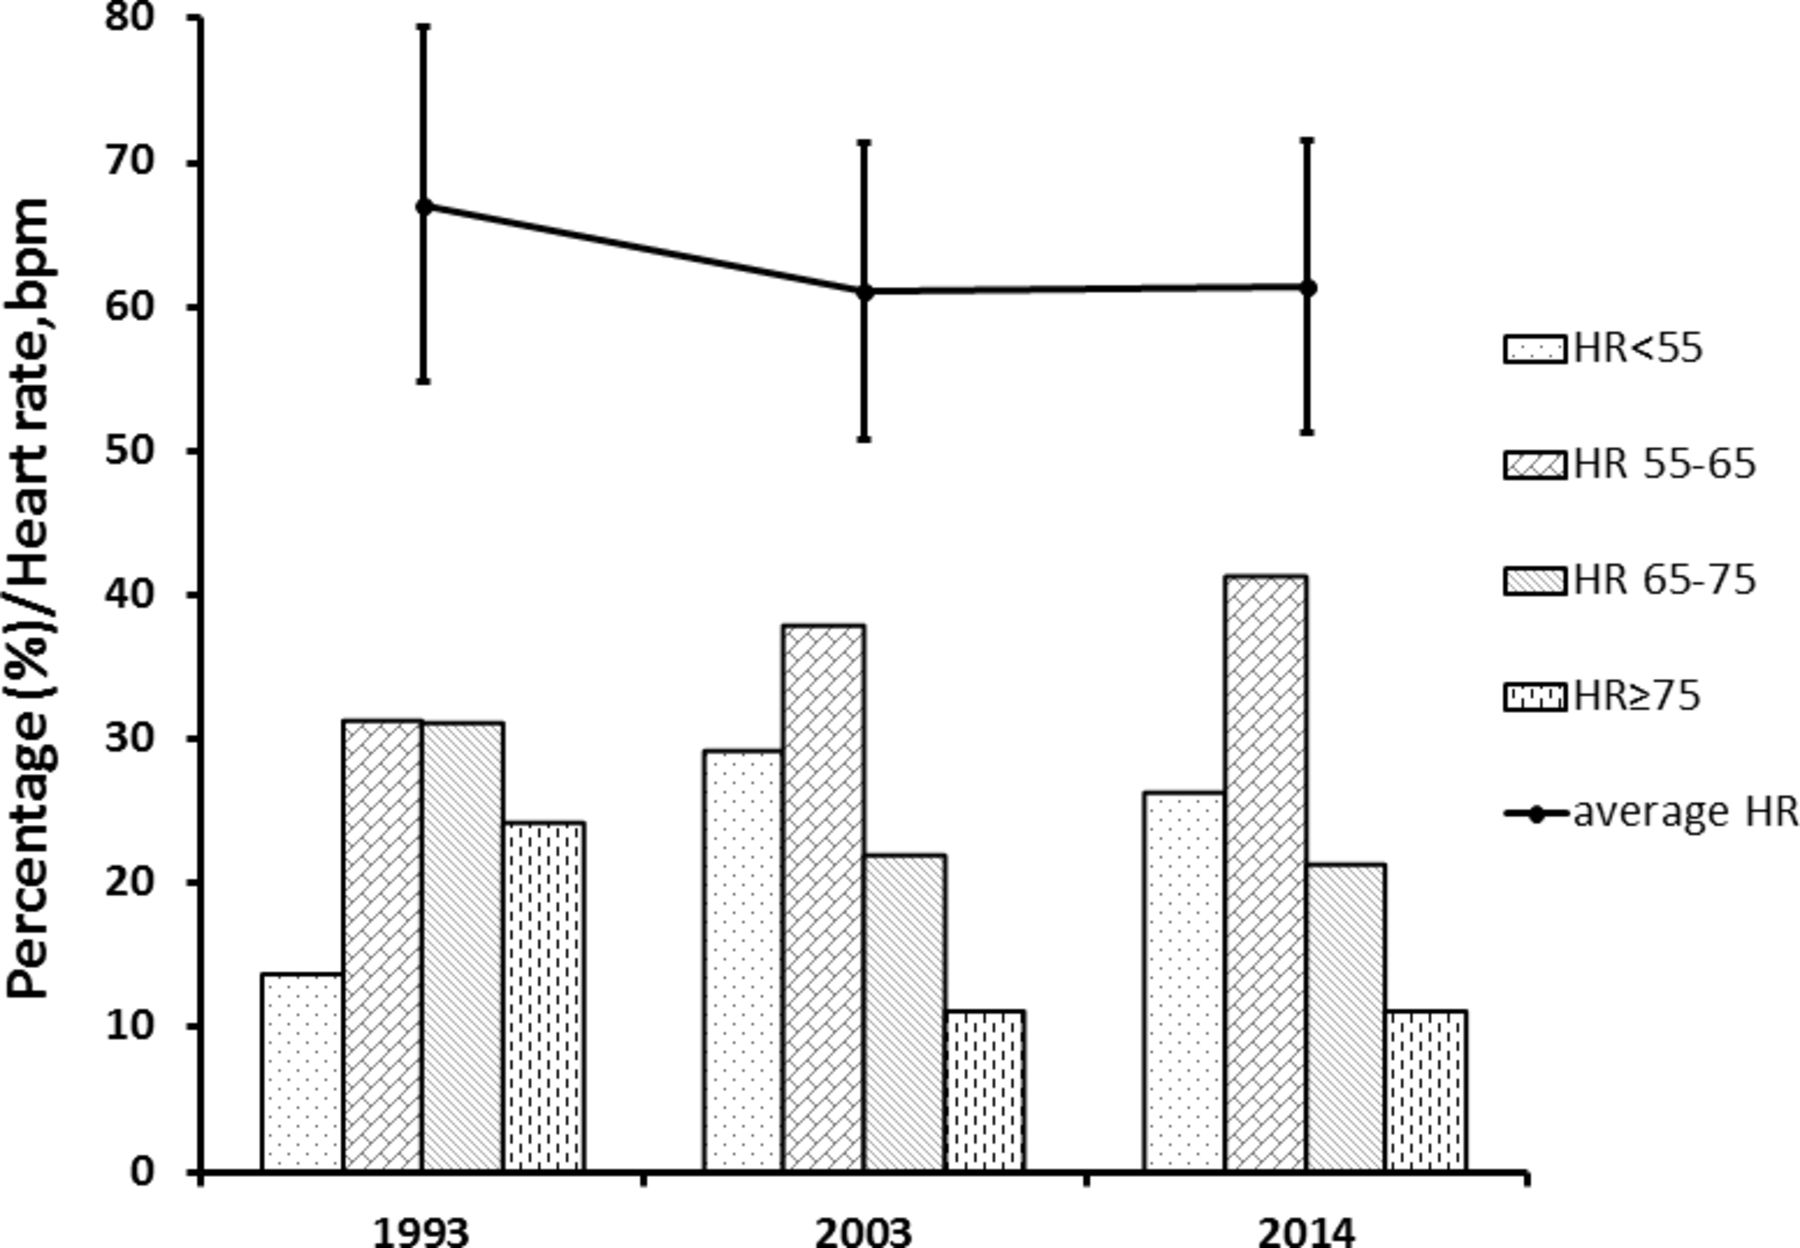 Impact of changes in heart rate with age on all-cause death